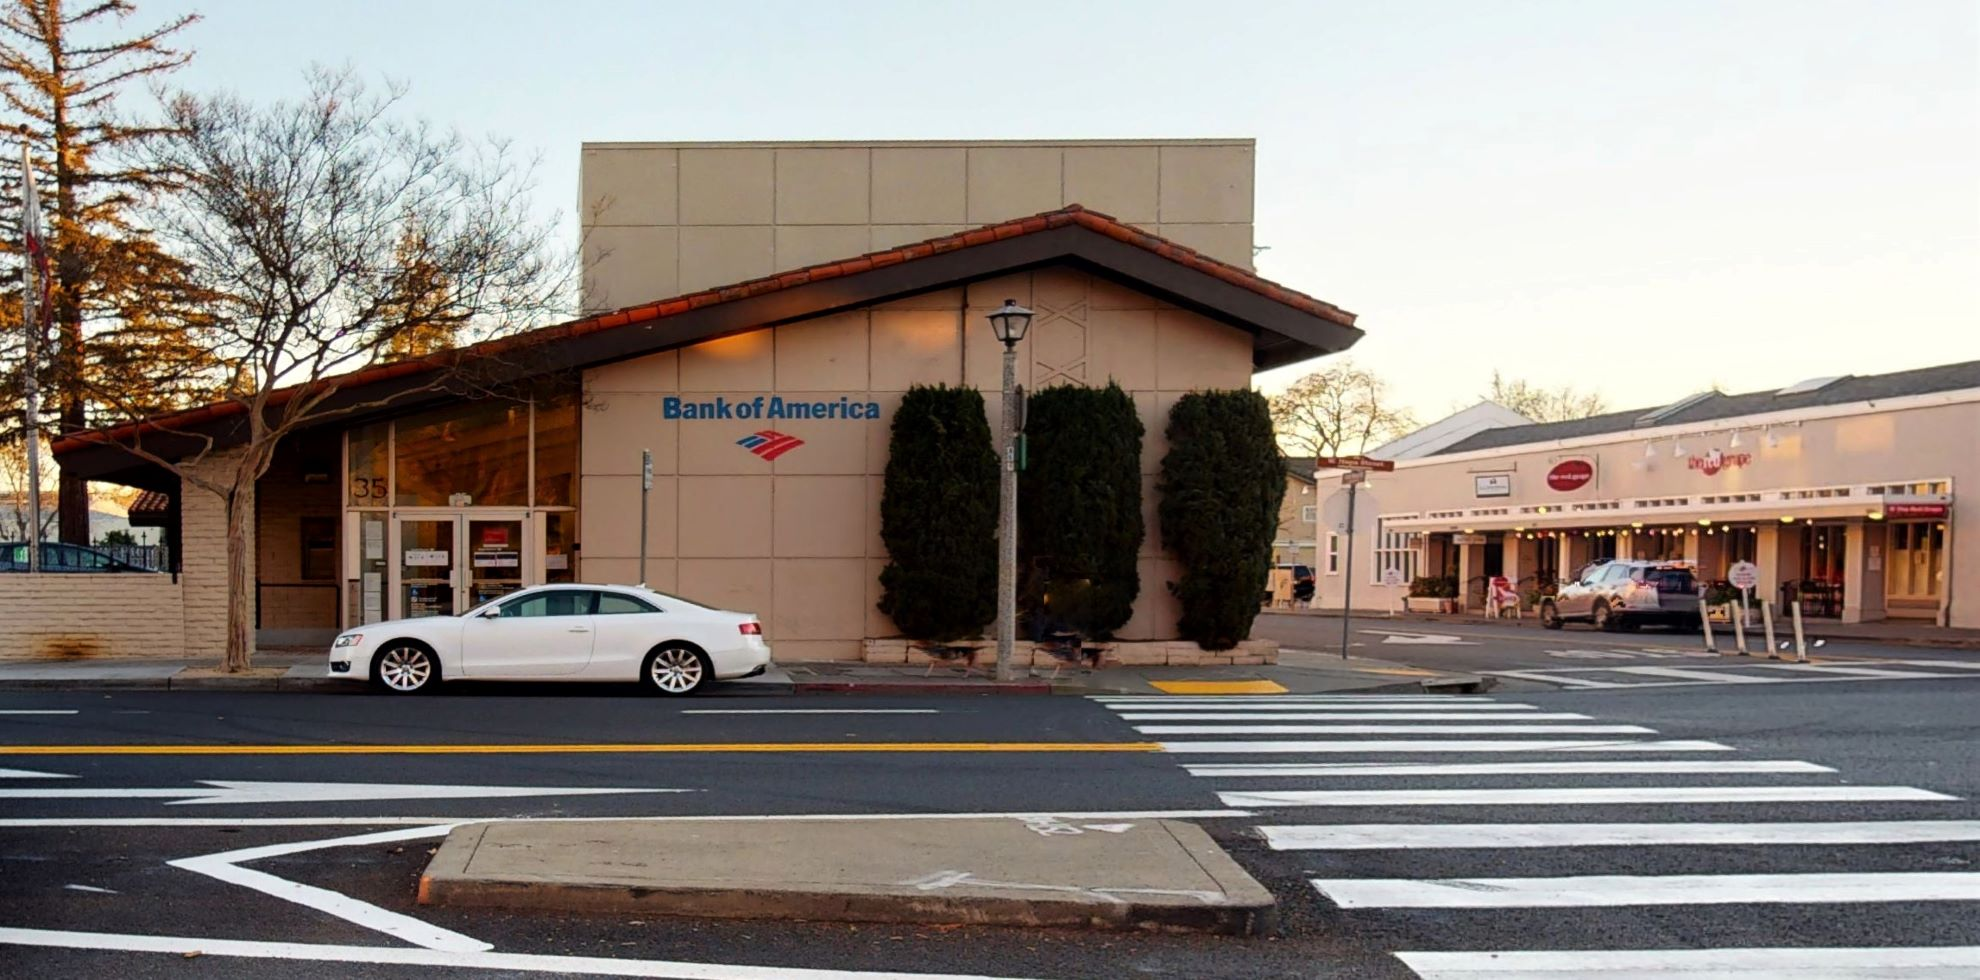 Bank of America financial center with walk-up ATM | 35 W Napa St, Sonoma, CA 95476